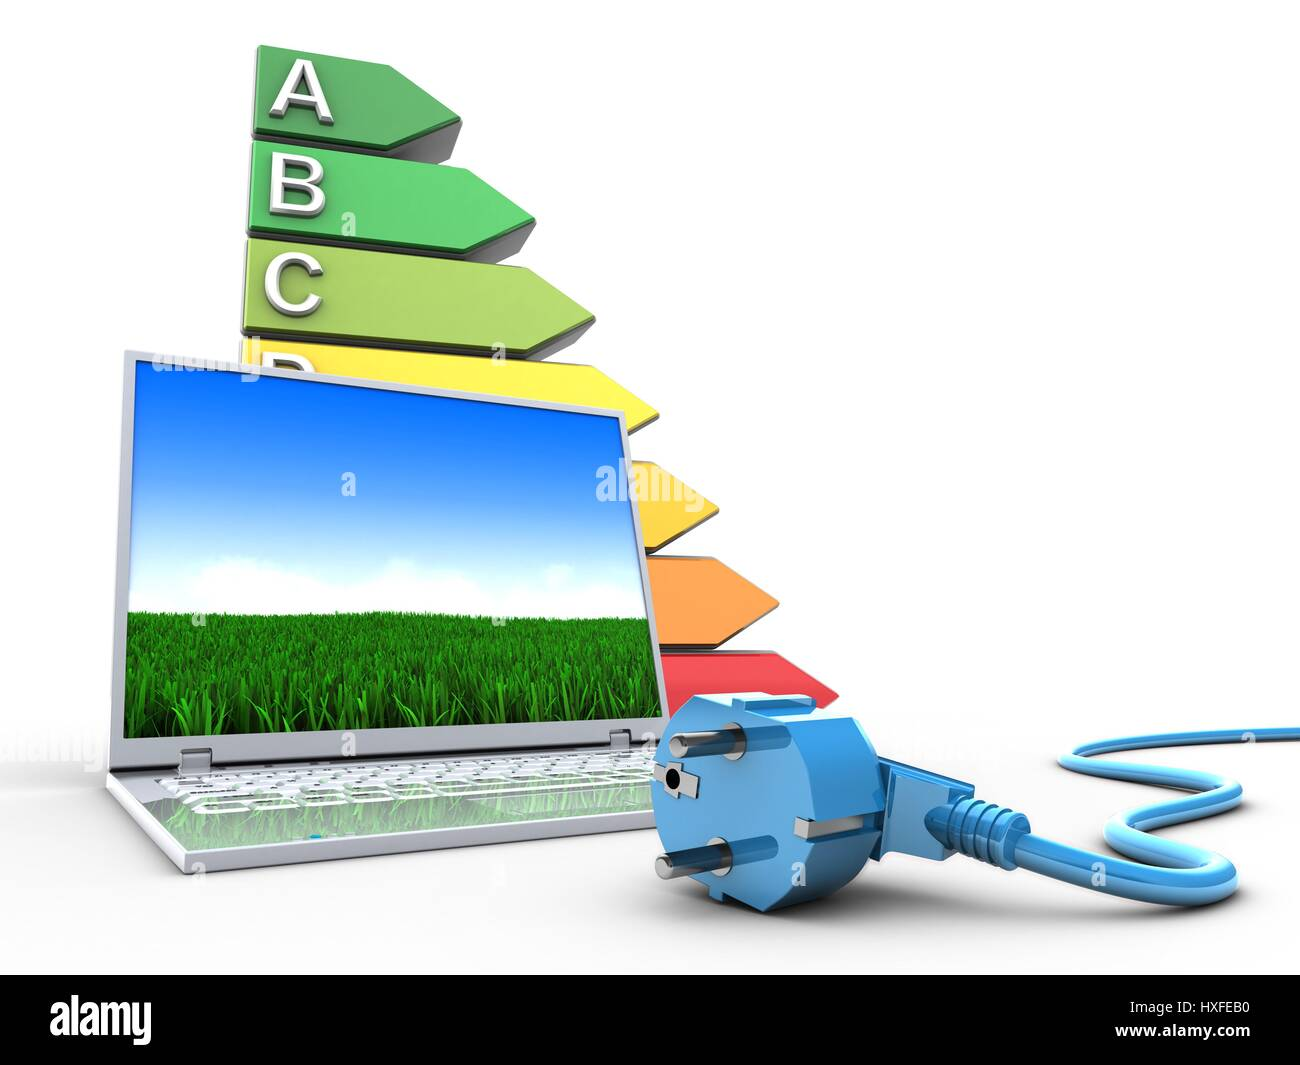 3d illustration of laptop computer over white background with efficient ranks and power cord - Stock Image